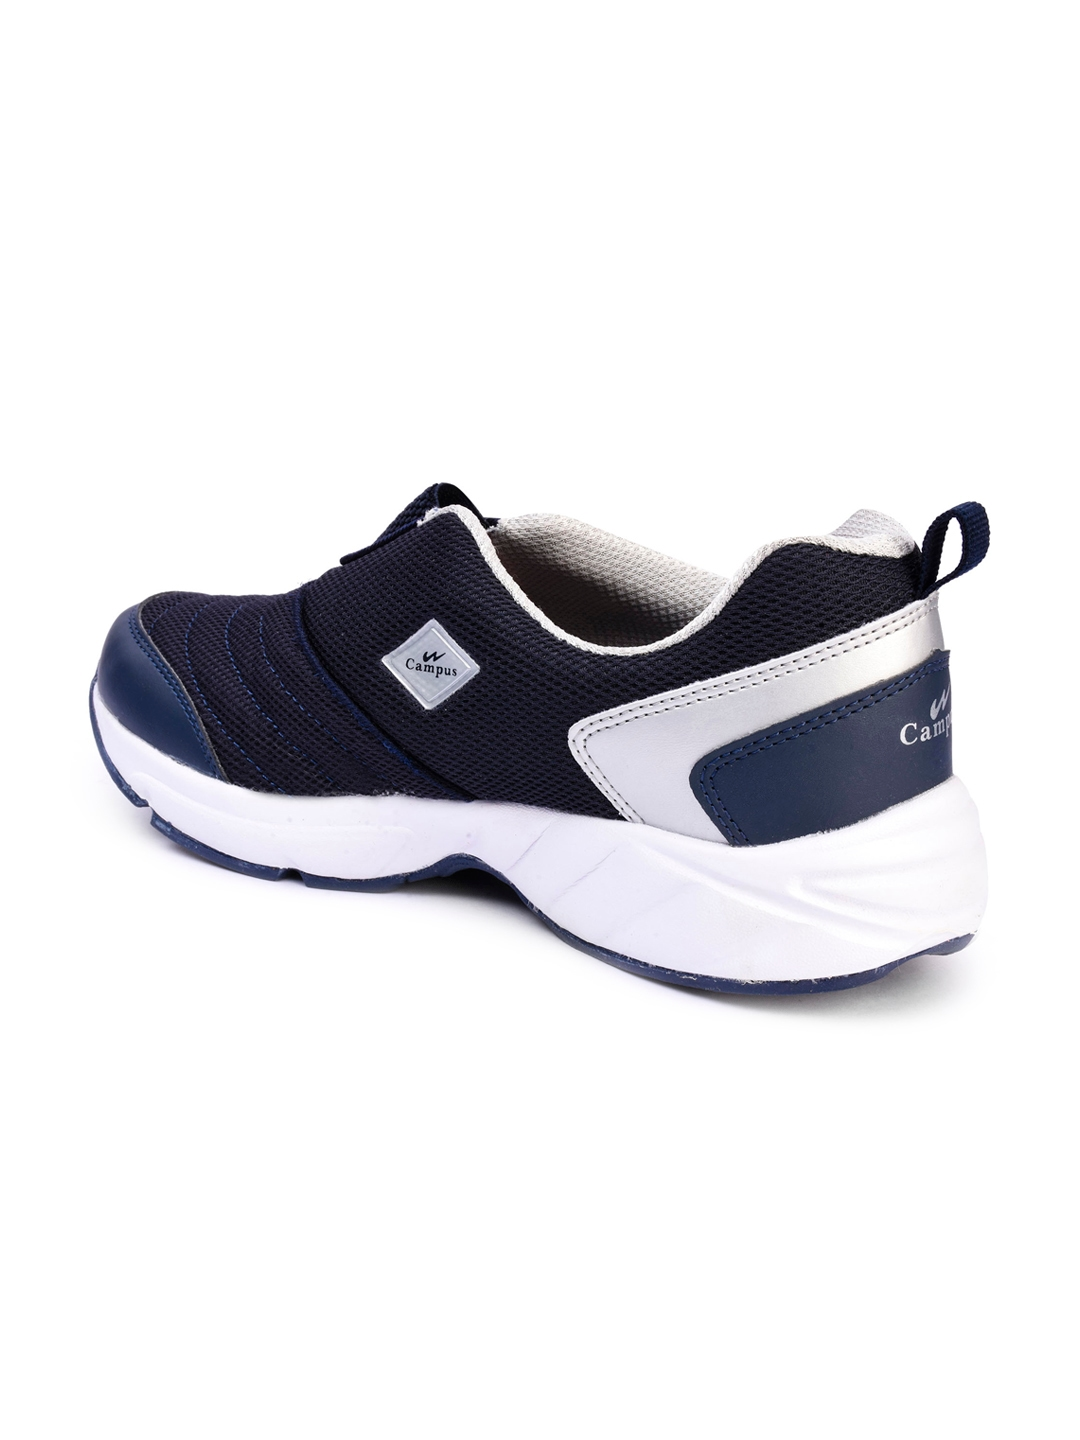 c563869c9f87a Buy Campus Men Montaya Navy Slip On Sneakers - Casual Shoes for Men ...